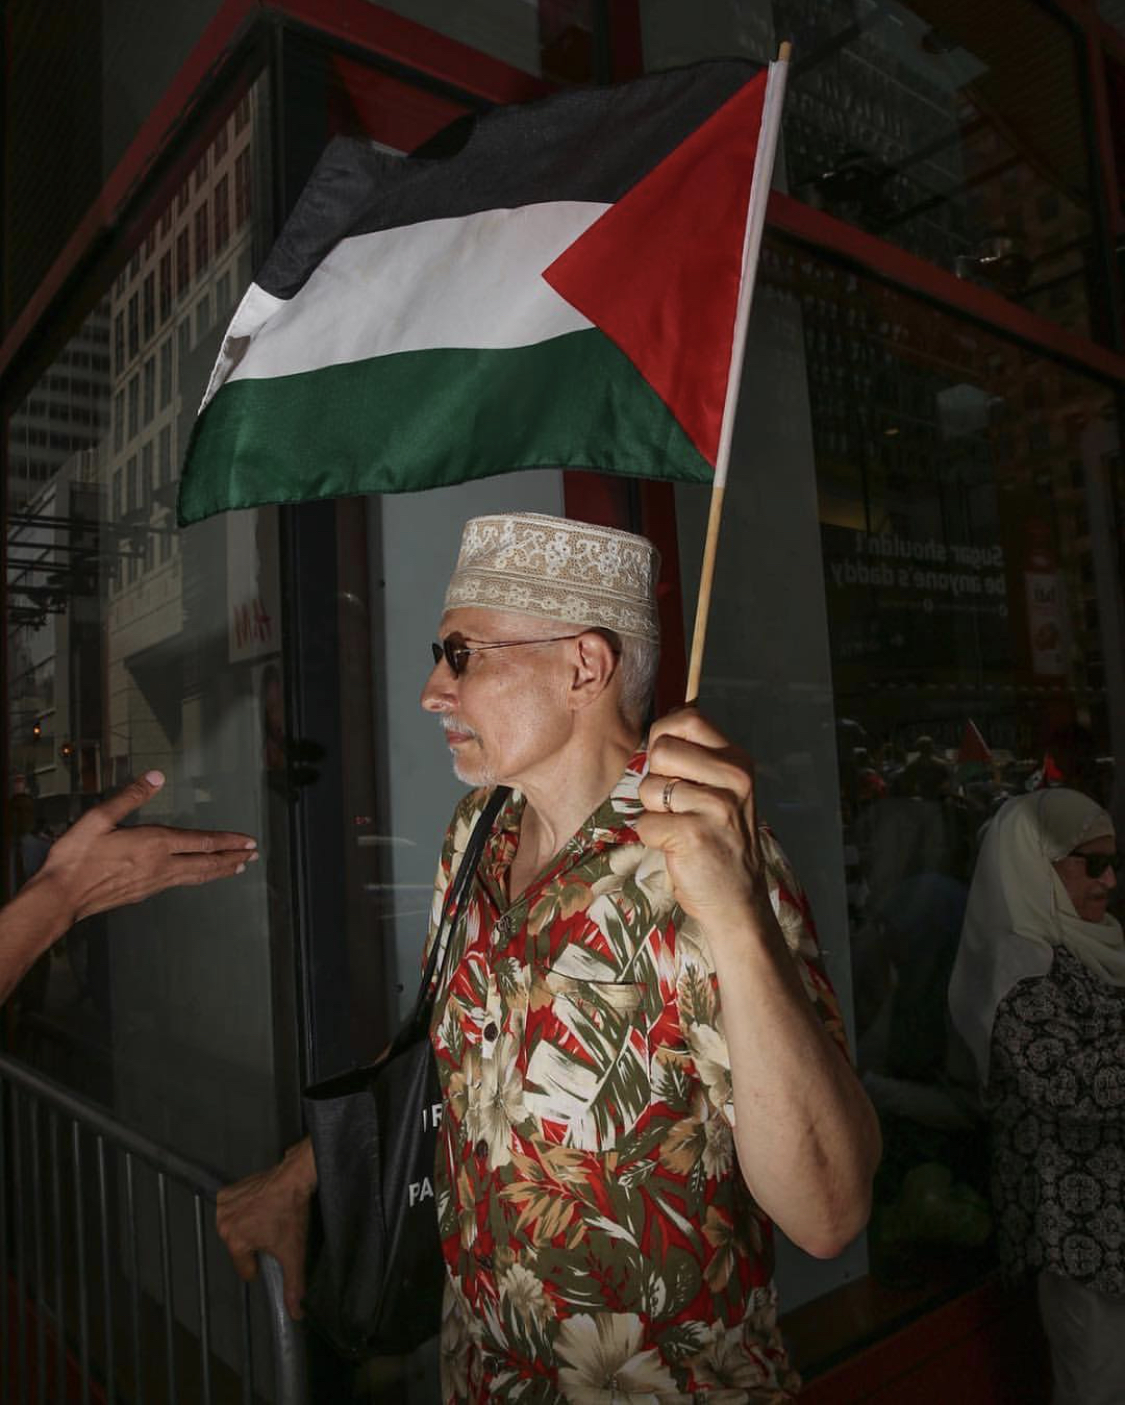 A Muslim man holds the Palestinian flag during a rally and protest in solidarity with Palestine in Times Square, Manhattan, NY, U.S. on July 22, 2017. Pic courtesy: Amr Alfiky